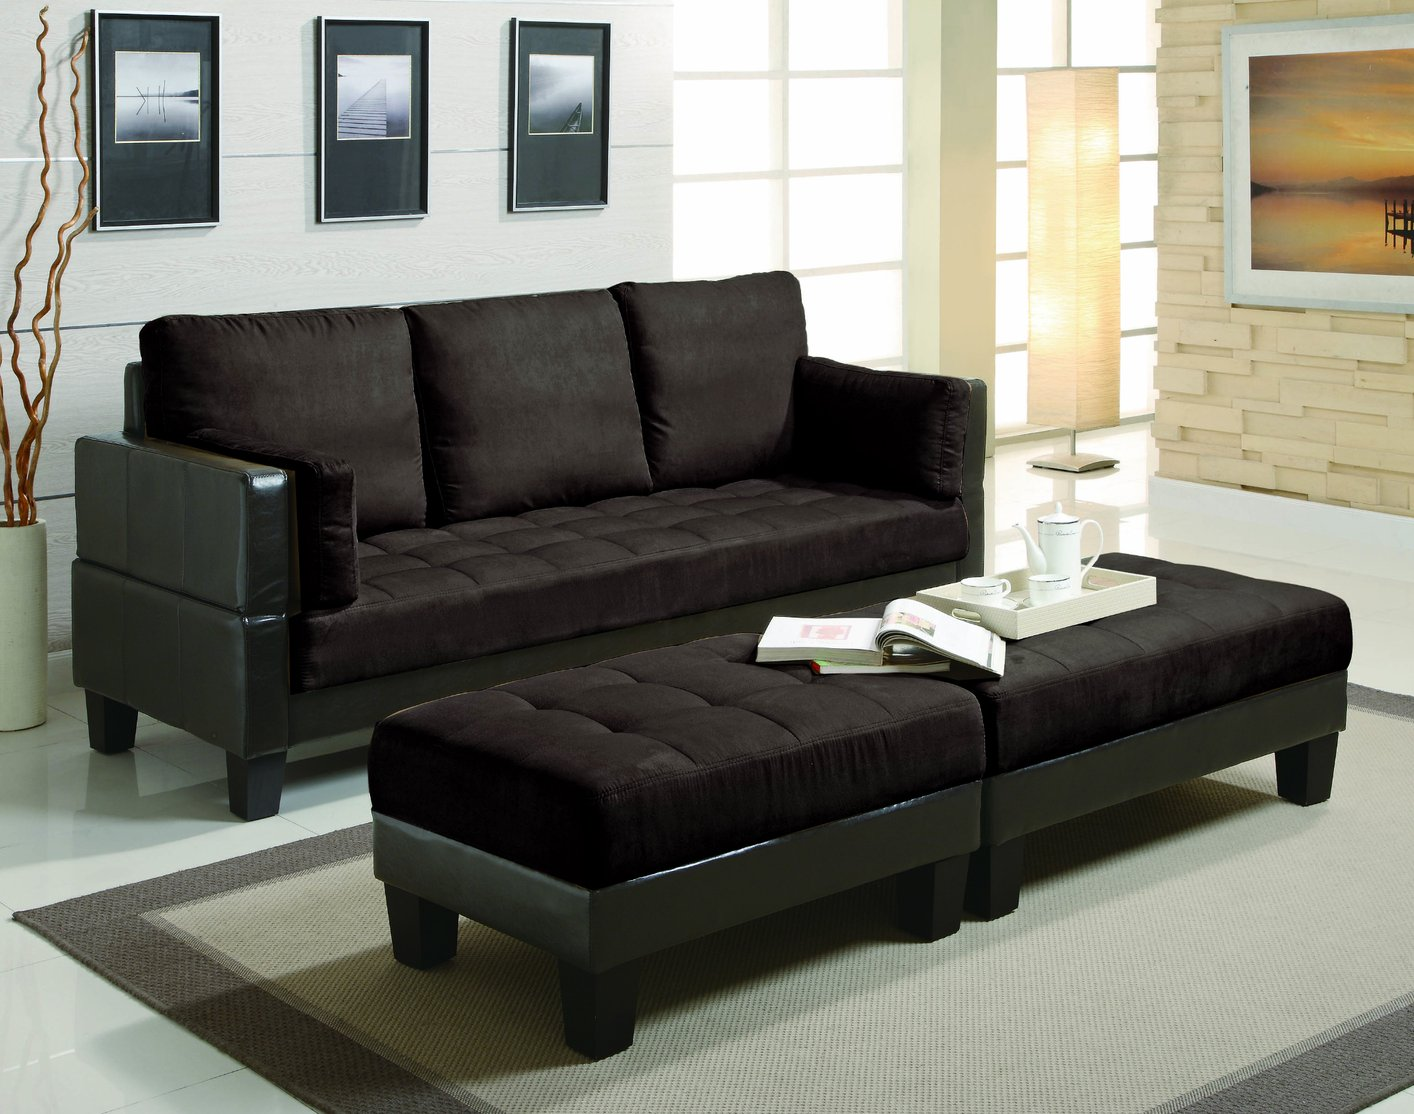 Brown Fabric Sectional Sofa And Ottoman Steal A Sofa